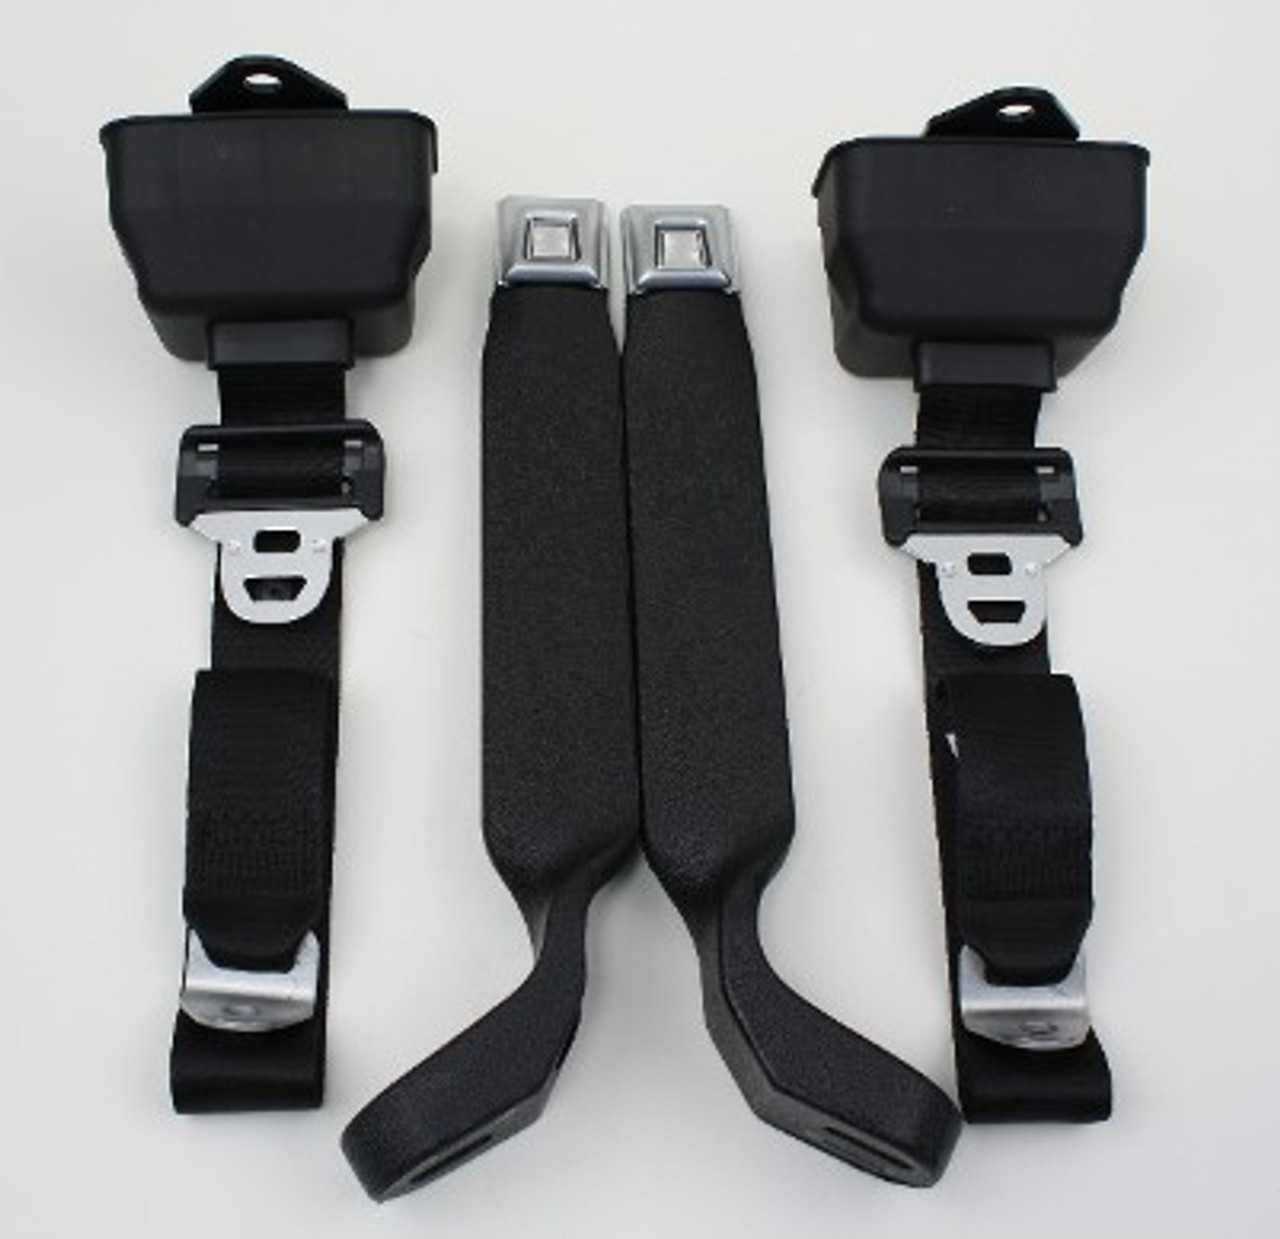 Seatbelt Solutions 1978-79 3pt. Frt Bronco Retractable S/L Belts